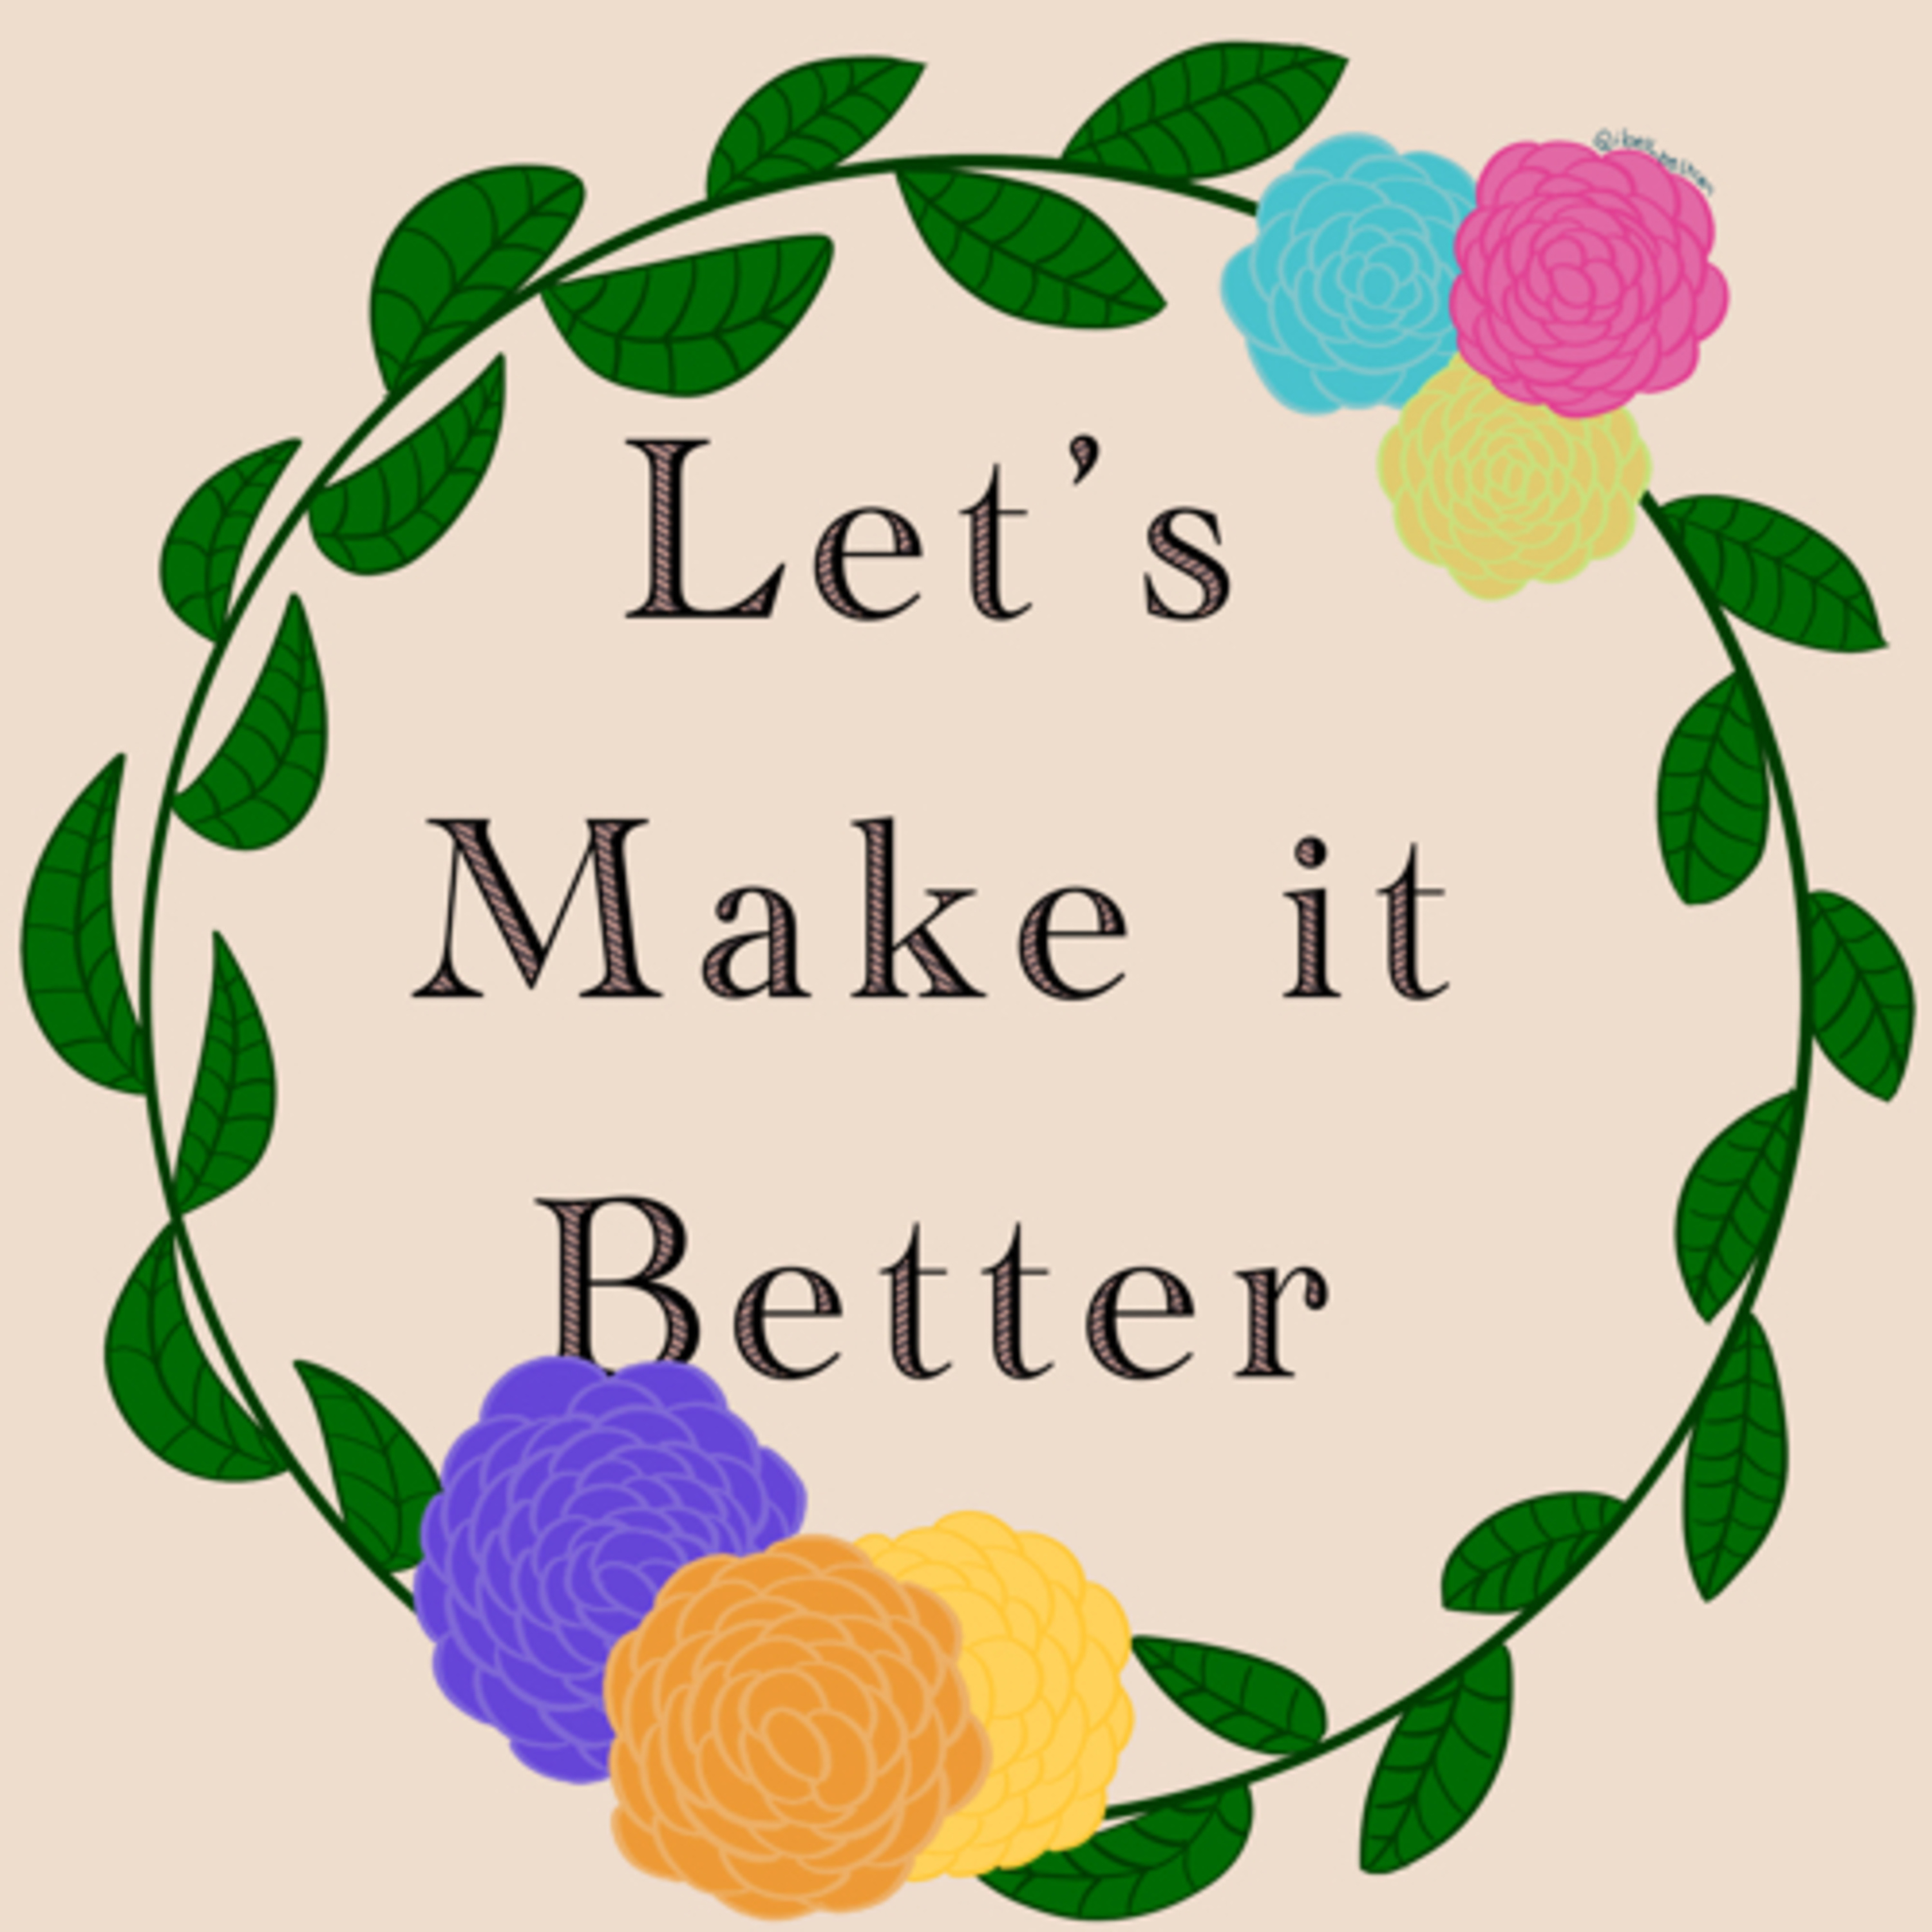 Let's Make It Better intro to our podcast